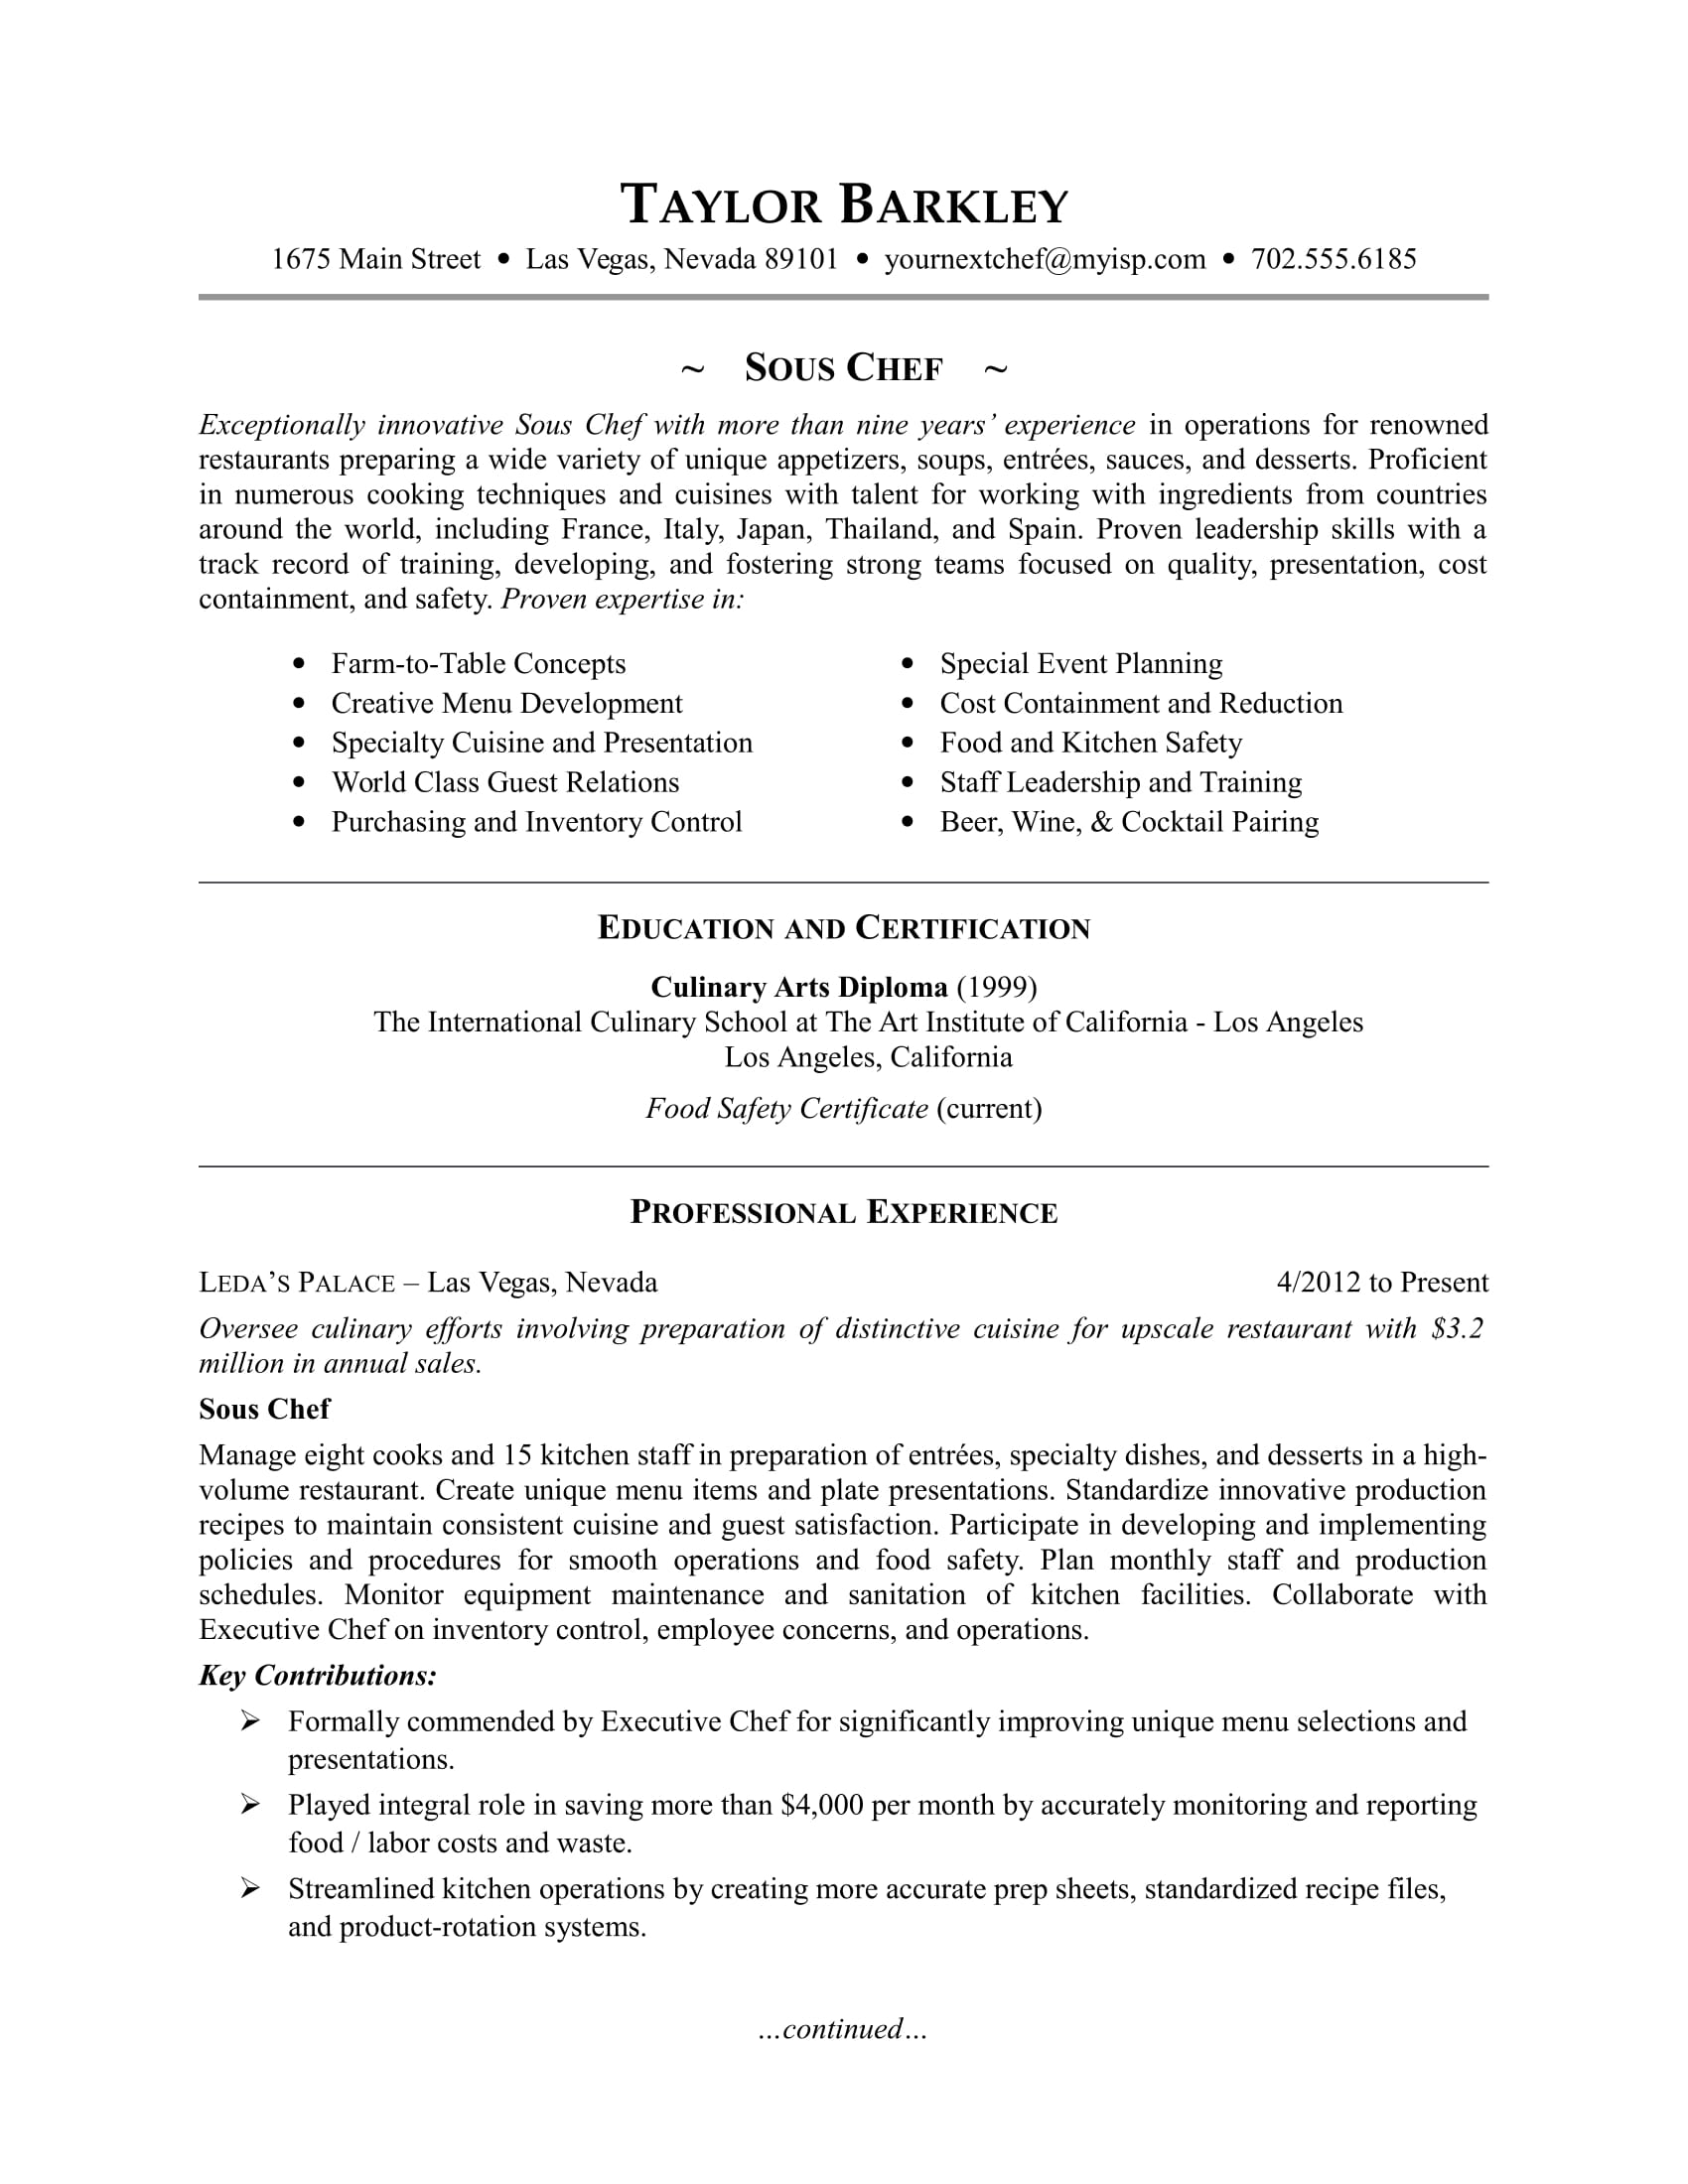 Sample Resume For A Sous Chef  Cook Sample Resume